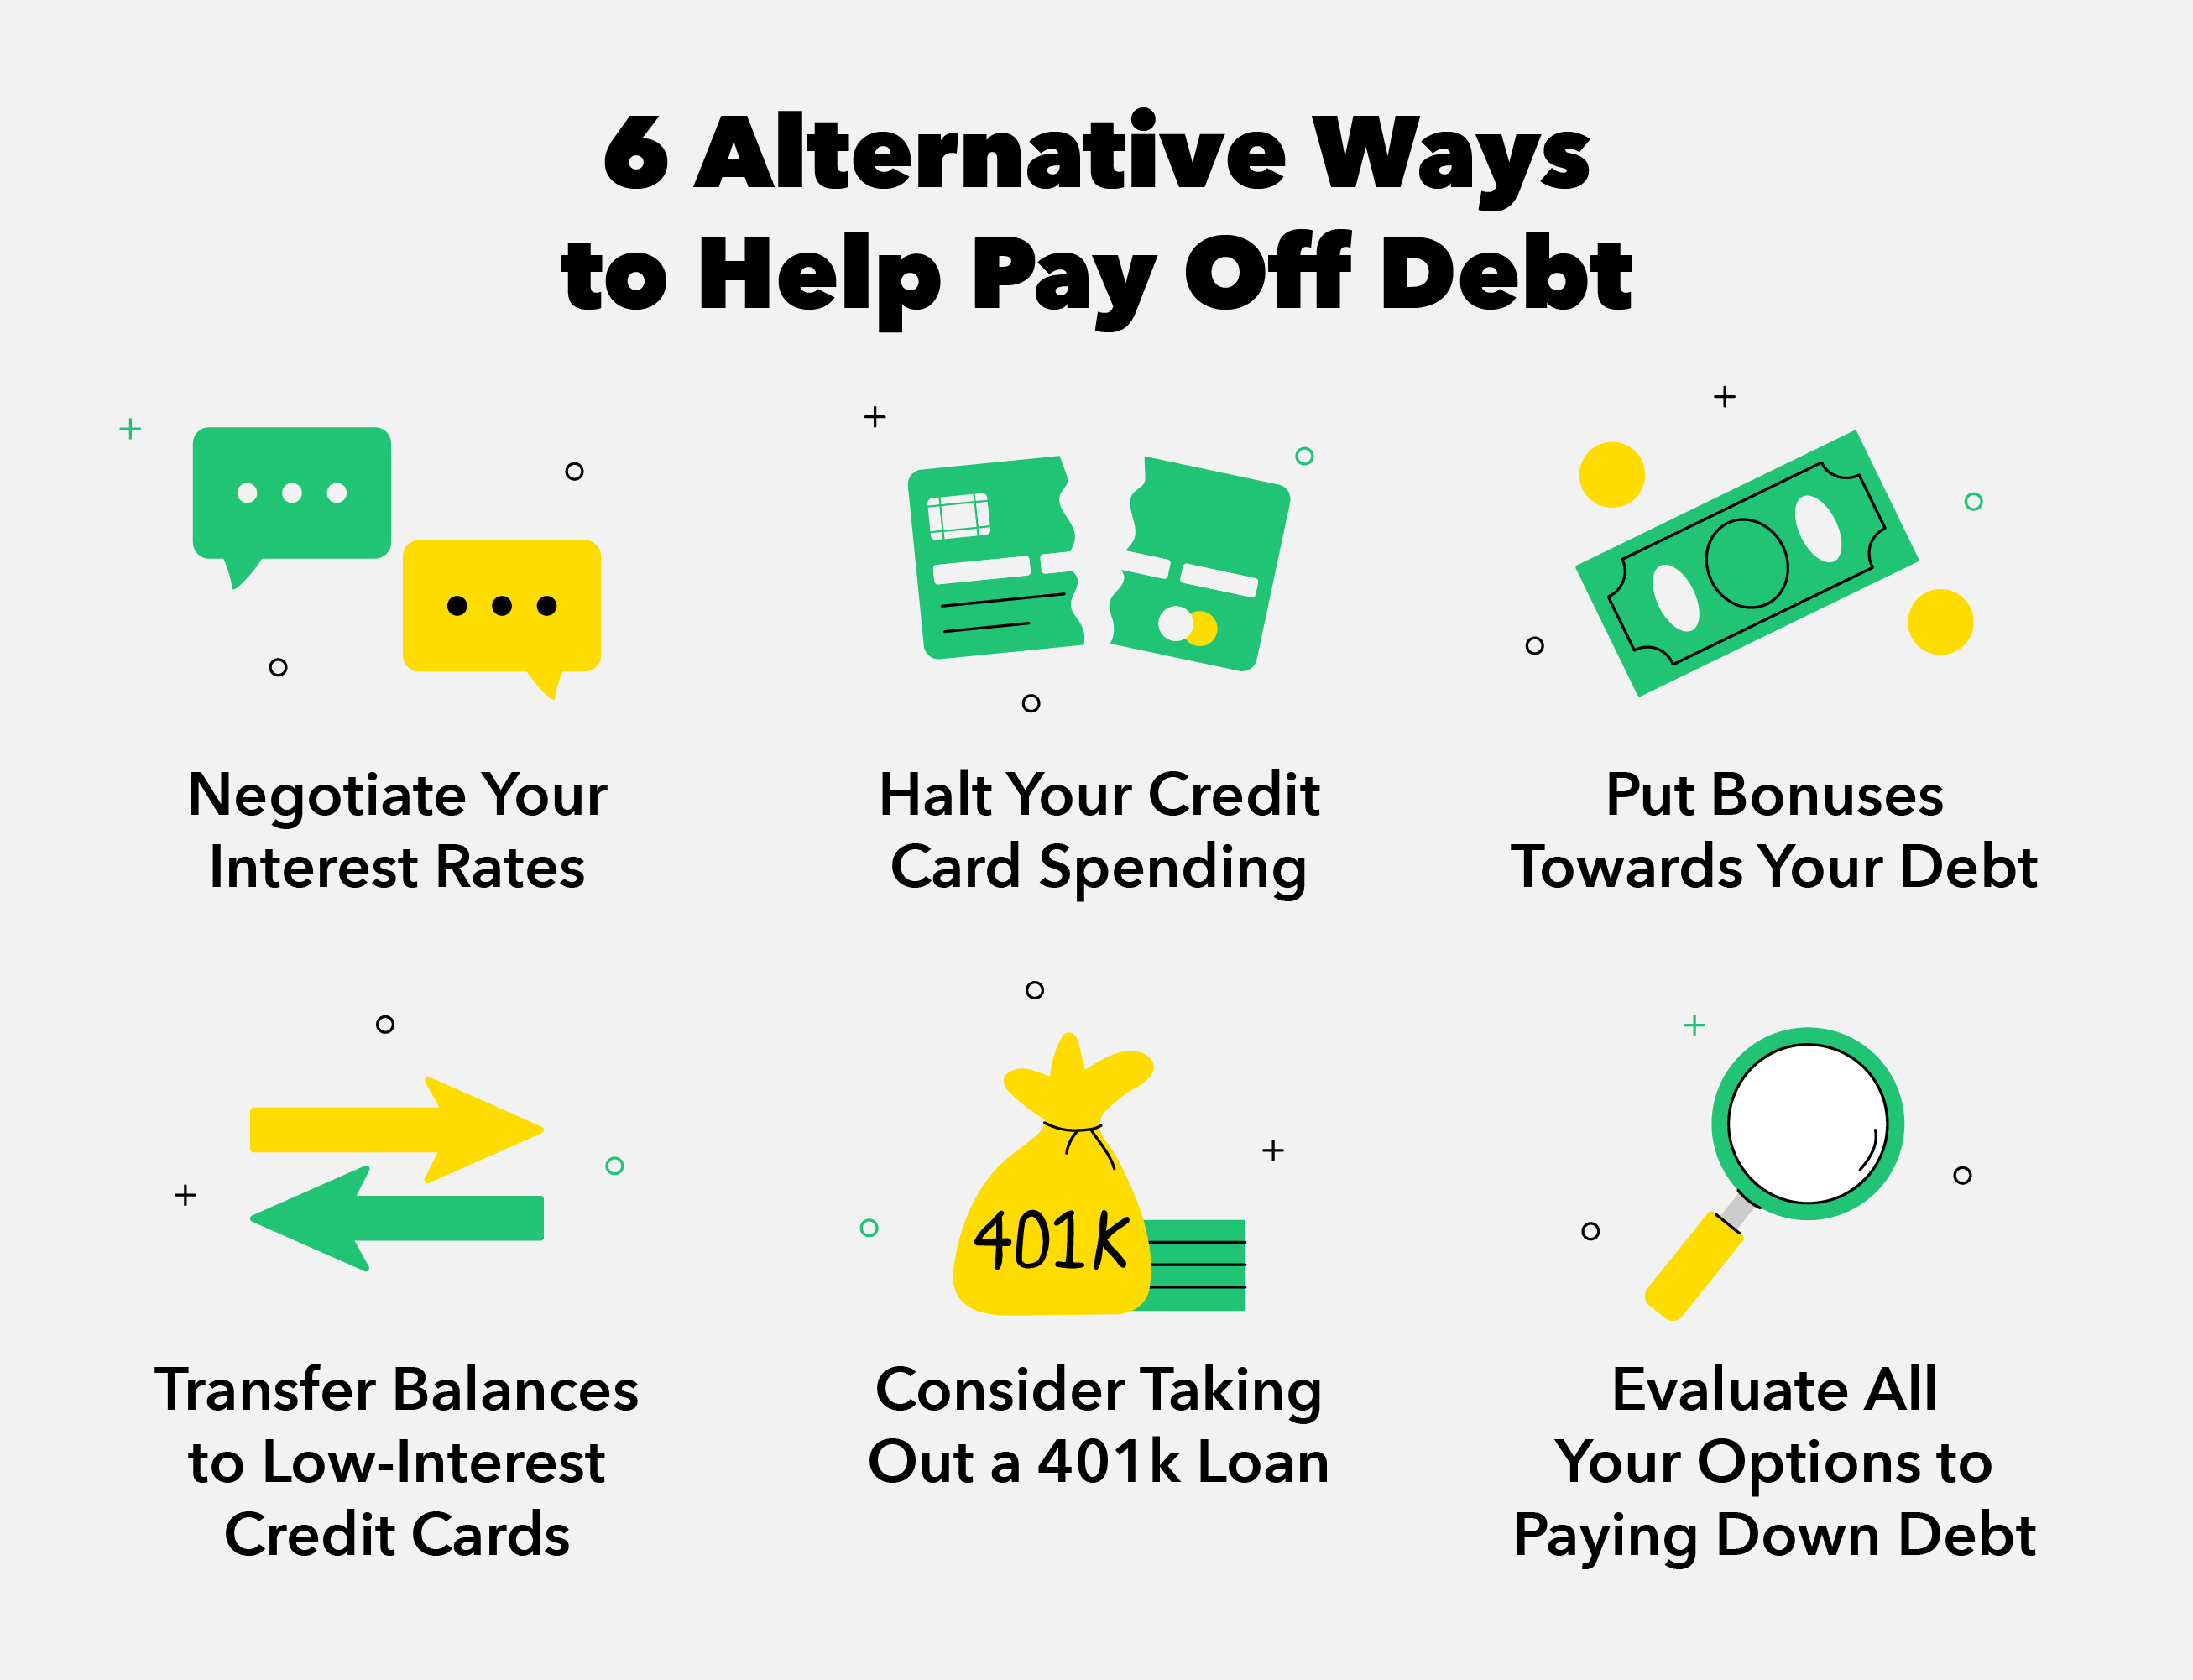 6 Ways to Pay Off Debt Without Cashing Out Your 401k